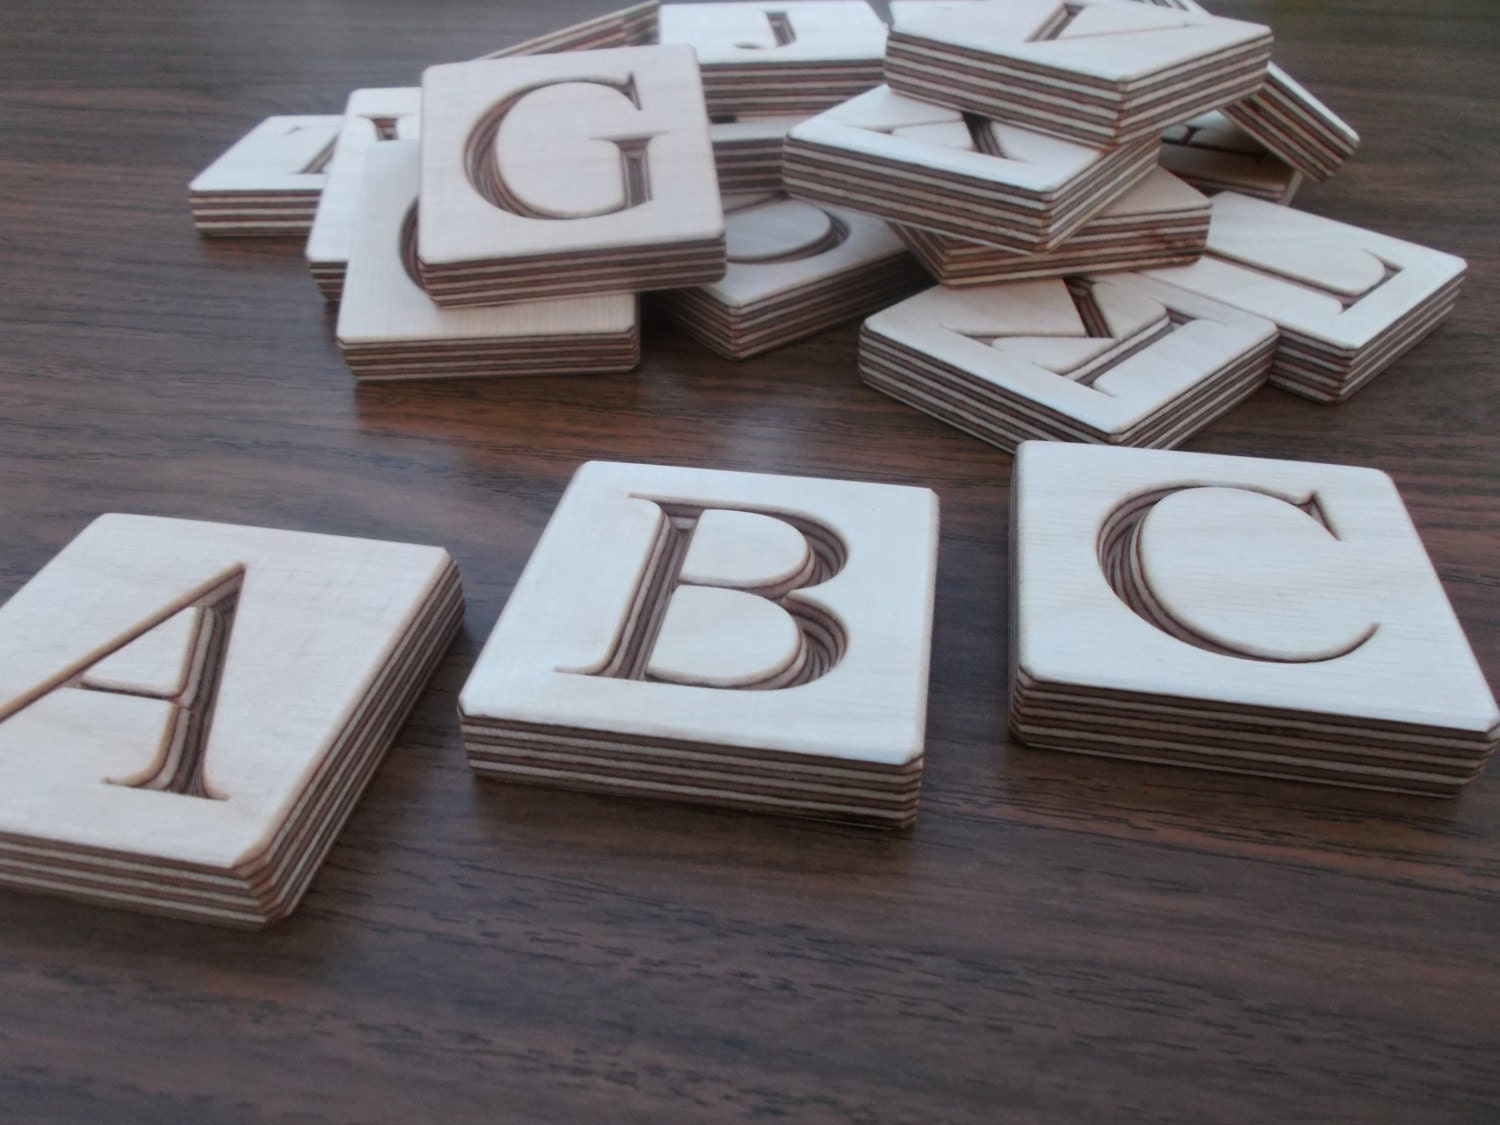 Abc blocks wooden english alphabet blocks by woodpeckerlg for Greek wooden block letters